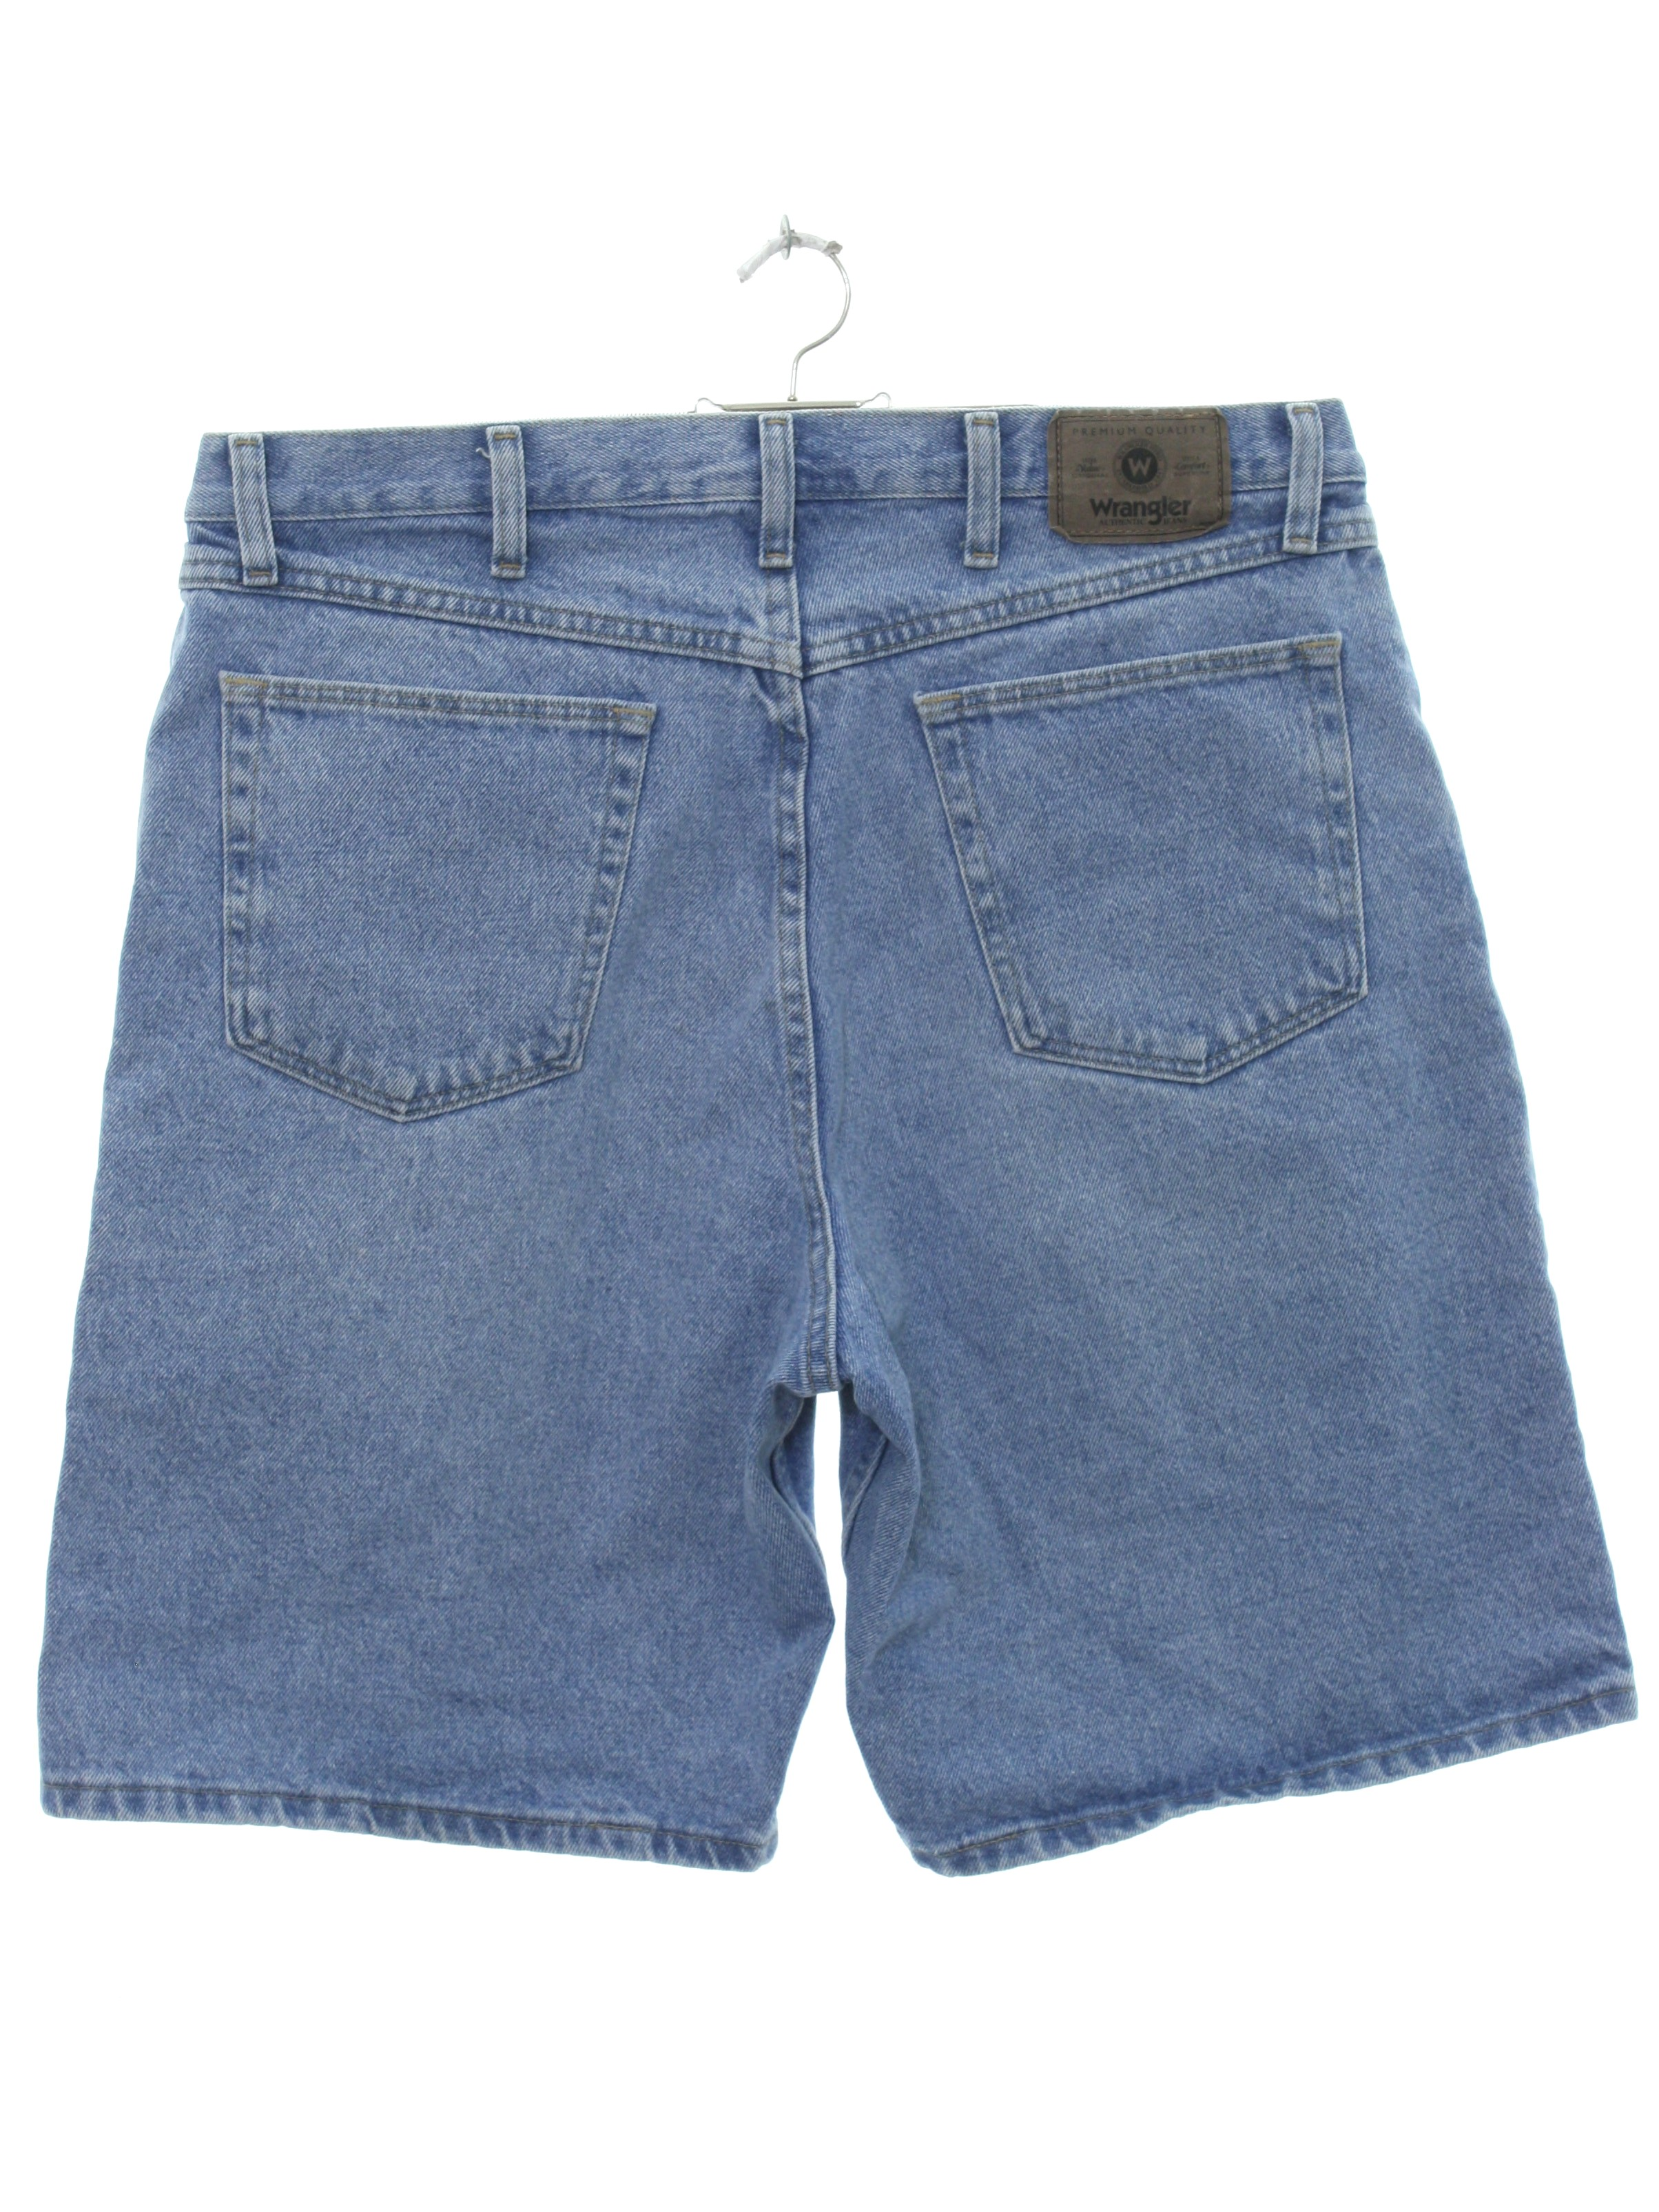 86e0e3967f Vintage 90s Shorts: 90s -Wrangler- Mens light wash blue cotton denim shorts.  Standard 5 pocket style. Features paper -Wrangler- tag on the back of the  ...